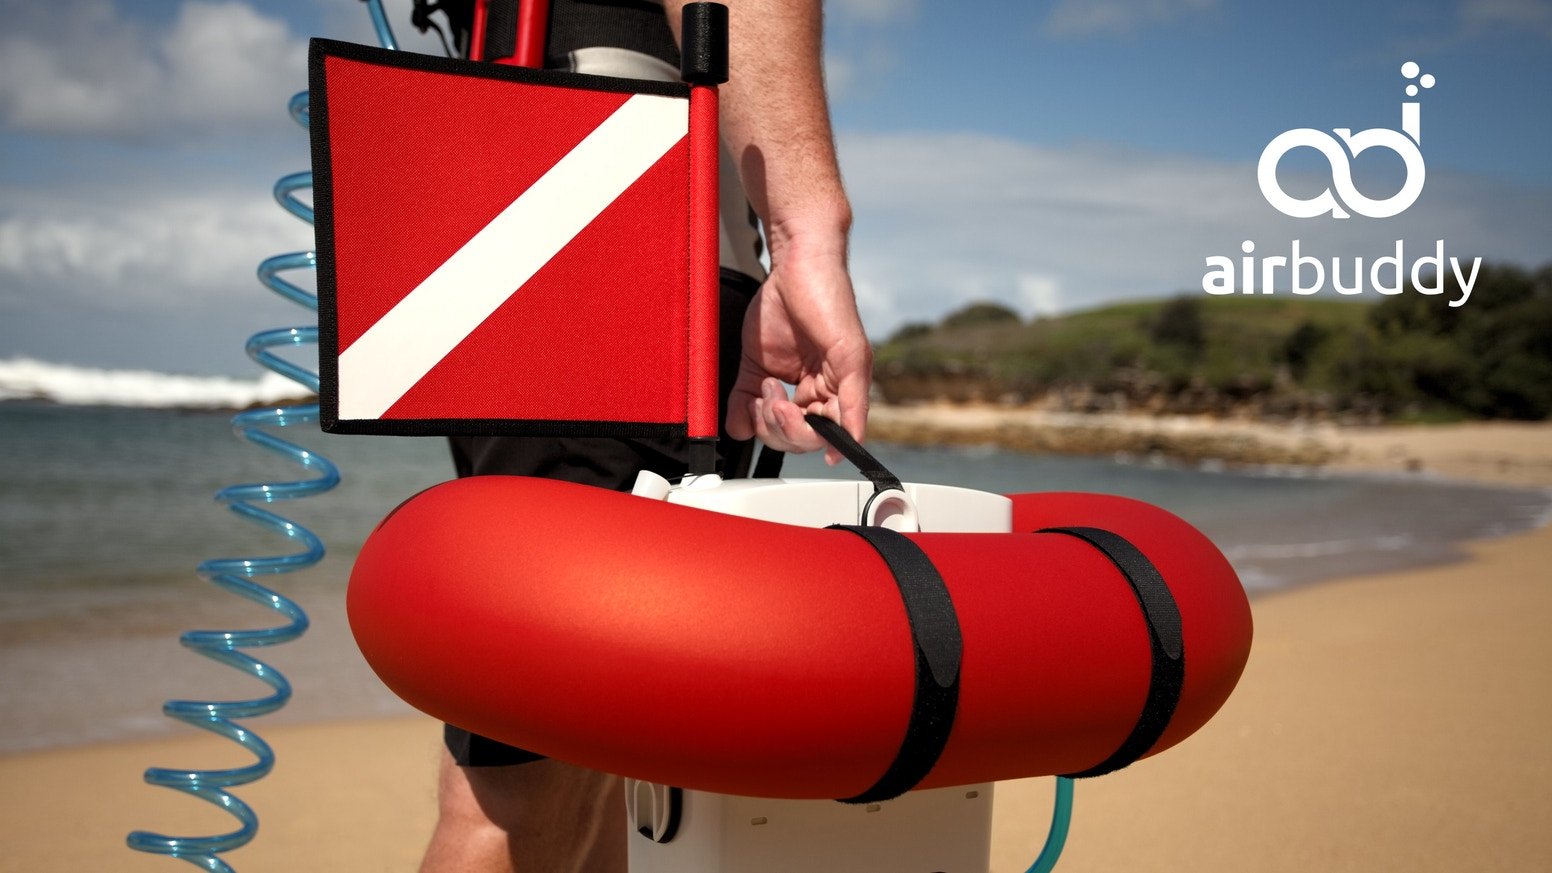 World's smallest diving gear. AirBuddy does not require any air tanks, yet enables diving for 45 minutes up to 12 meters (40ft) deep.